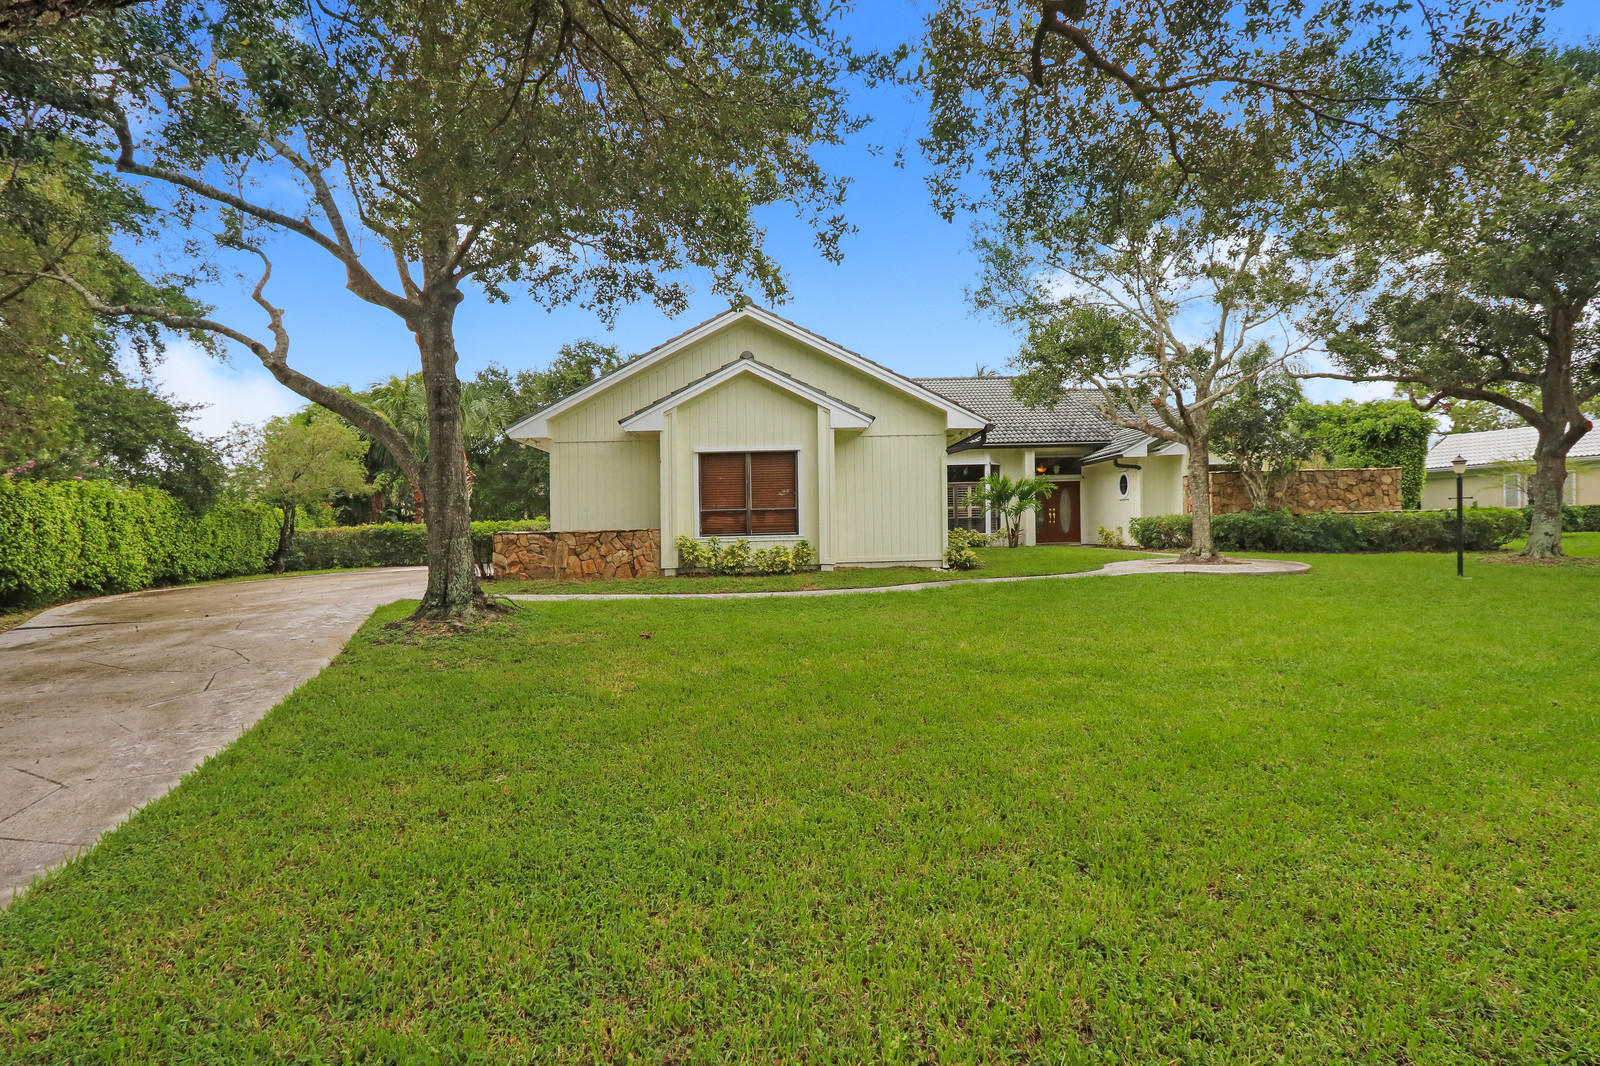 HERITAGE OAKS TEQUESTA REAL ESTATE